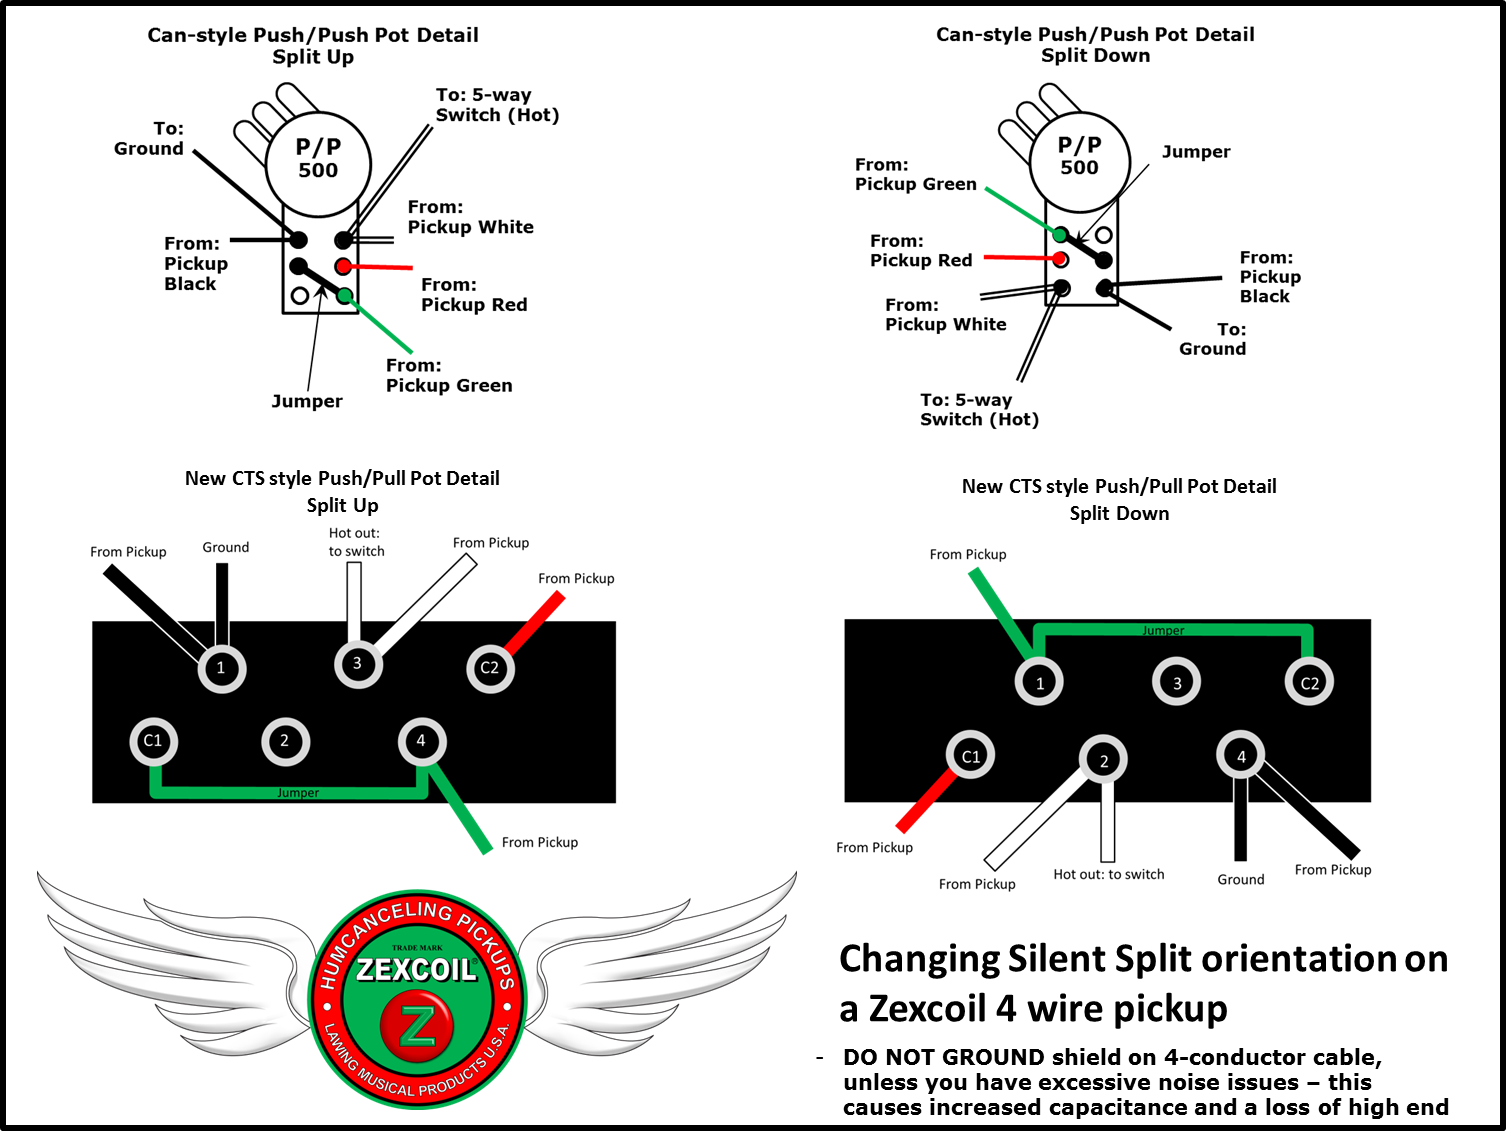 Four Wire Humbucker Wiring Diagram Lawing Musical Products Diagrams